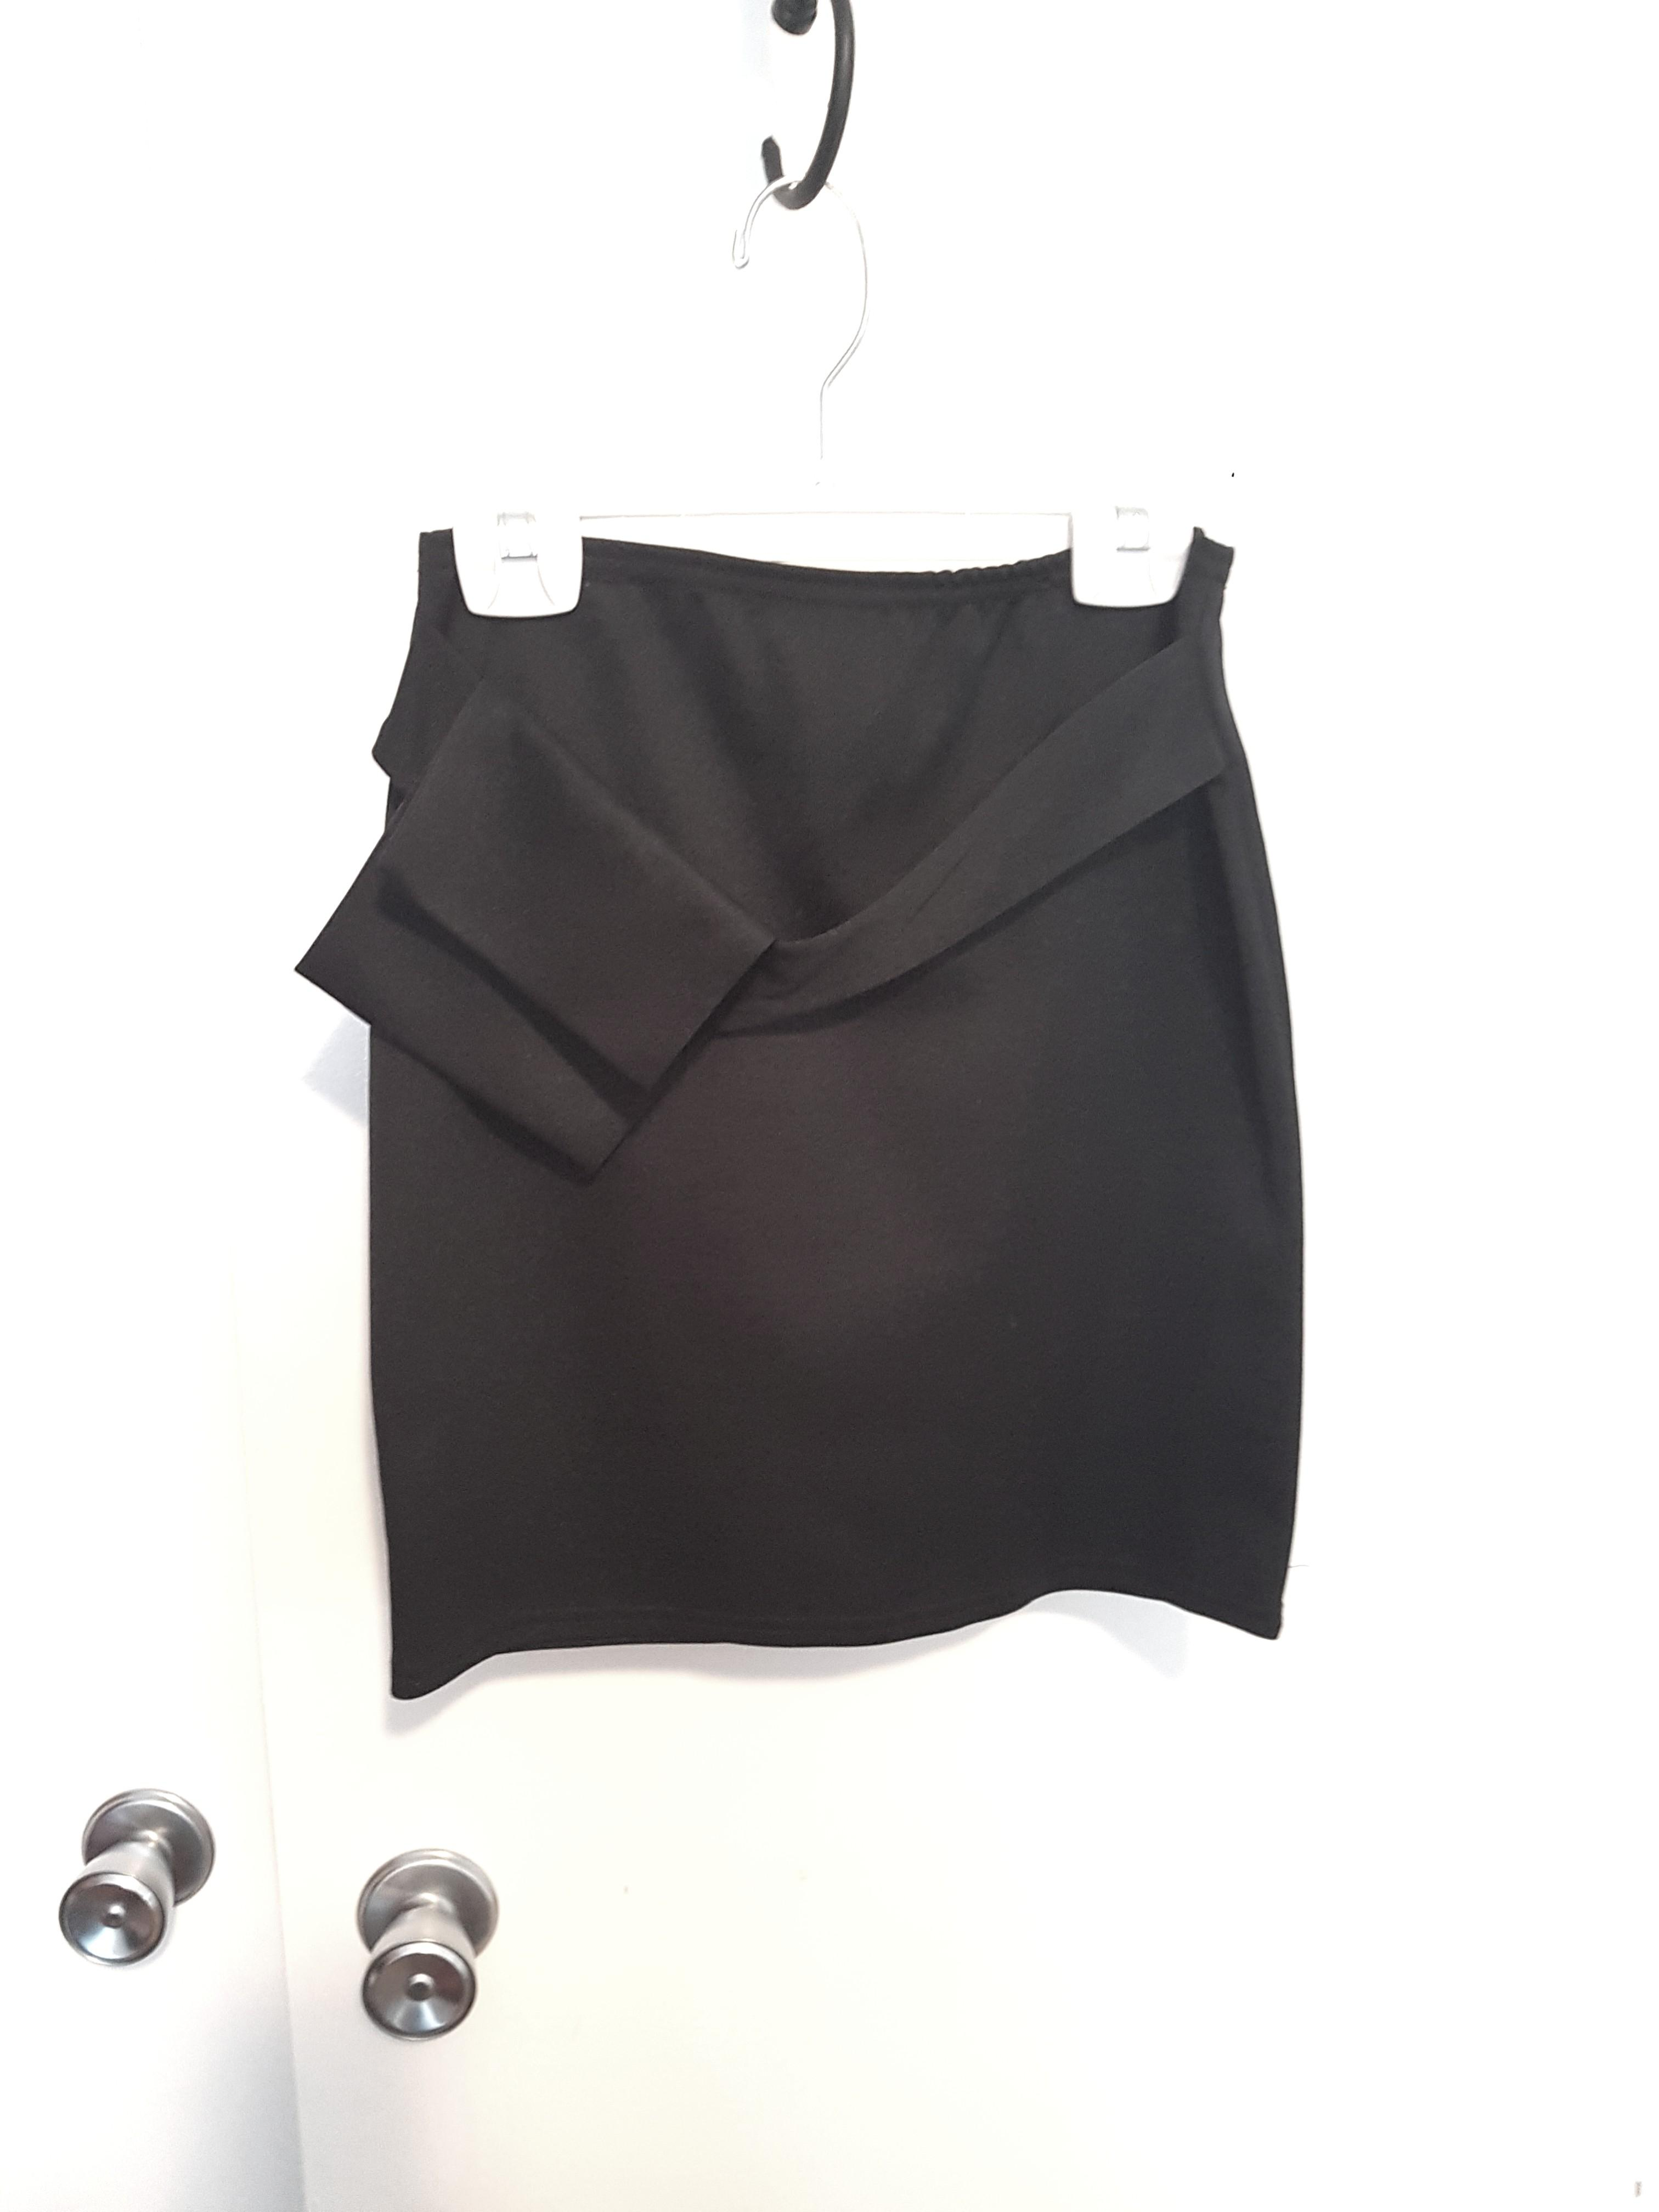 Black mini skirt with pouch